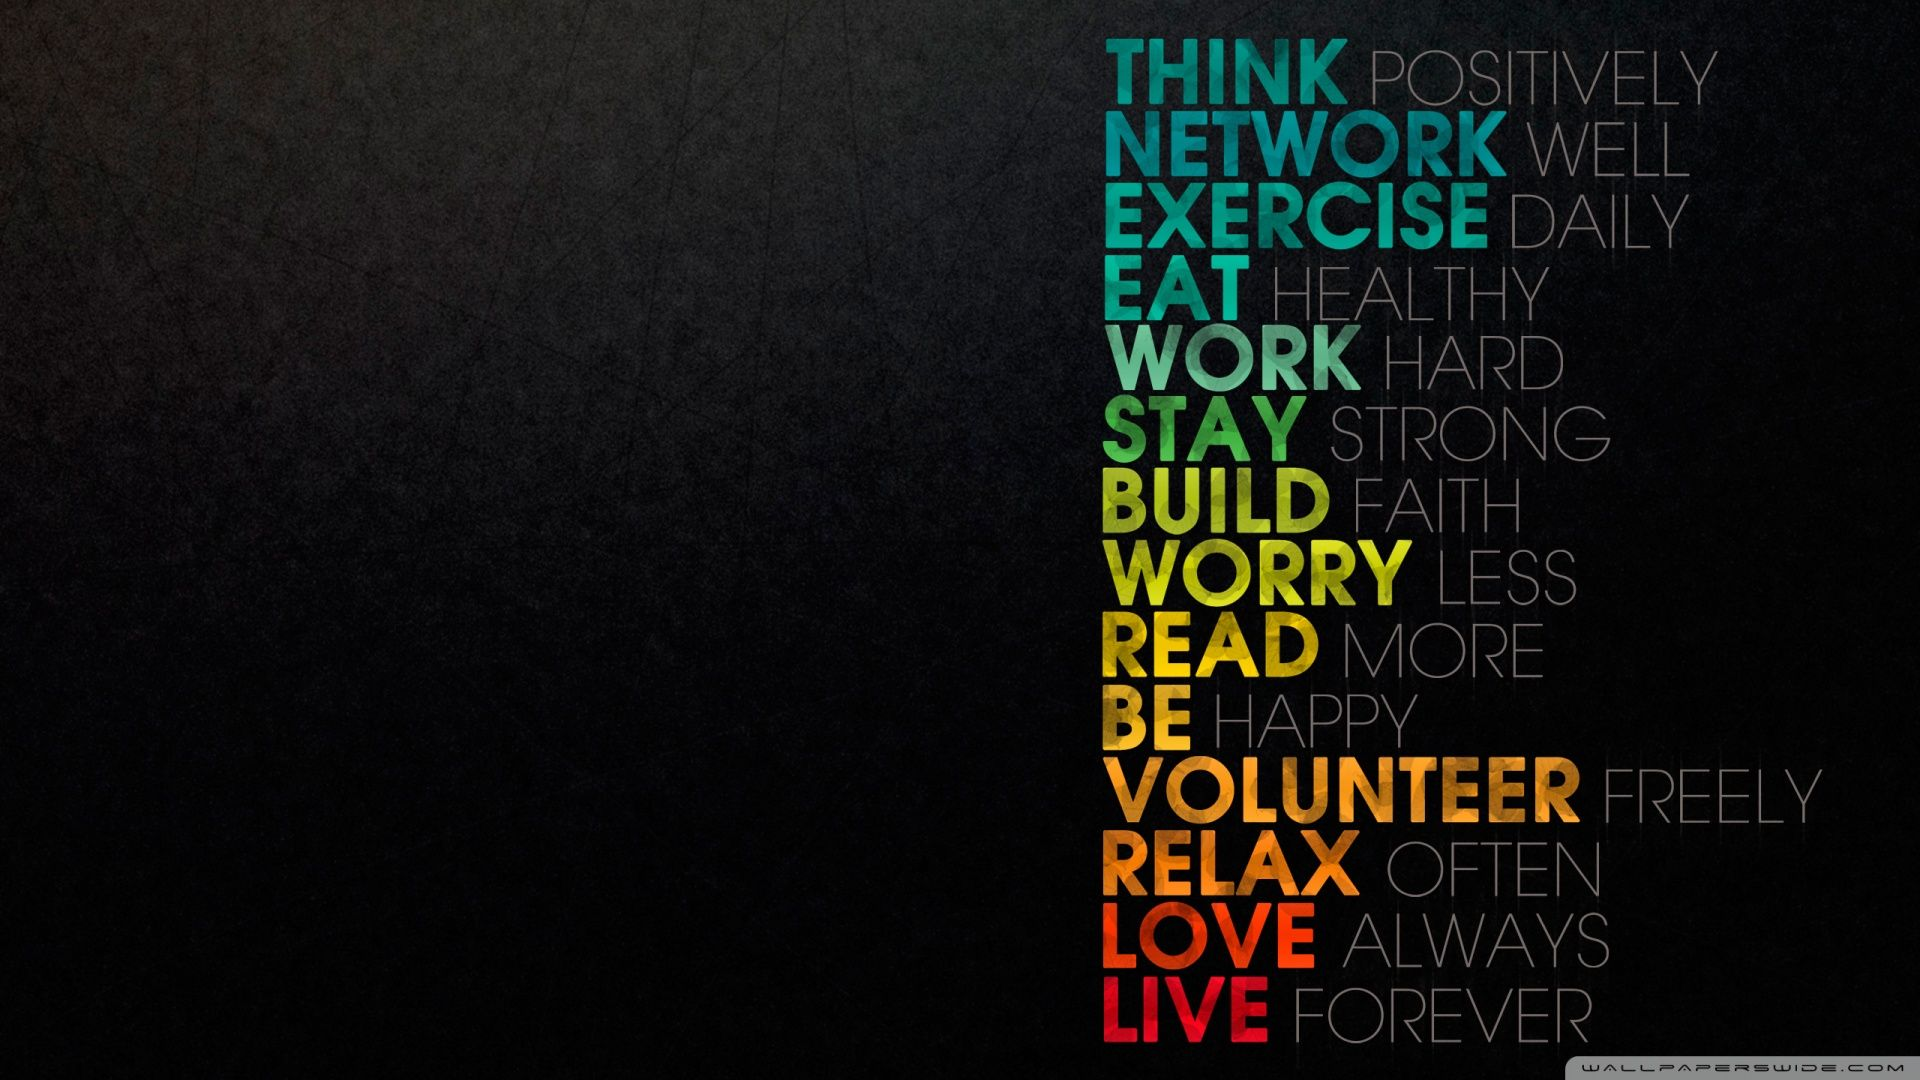 motivationalwallpaper1920x1080.jpg (1920×1080) Nice